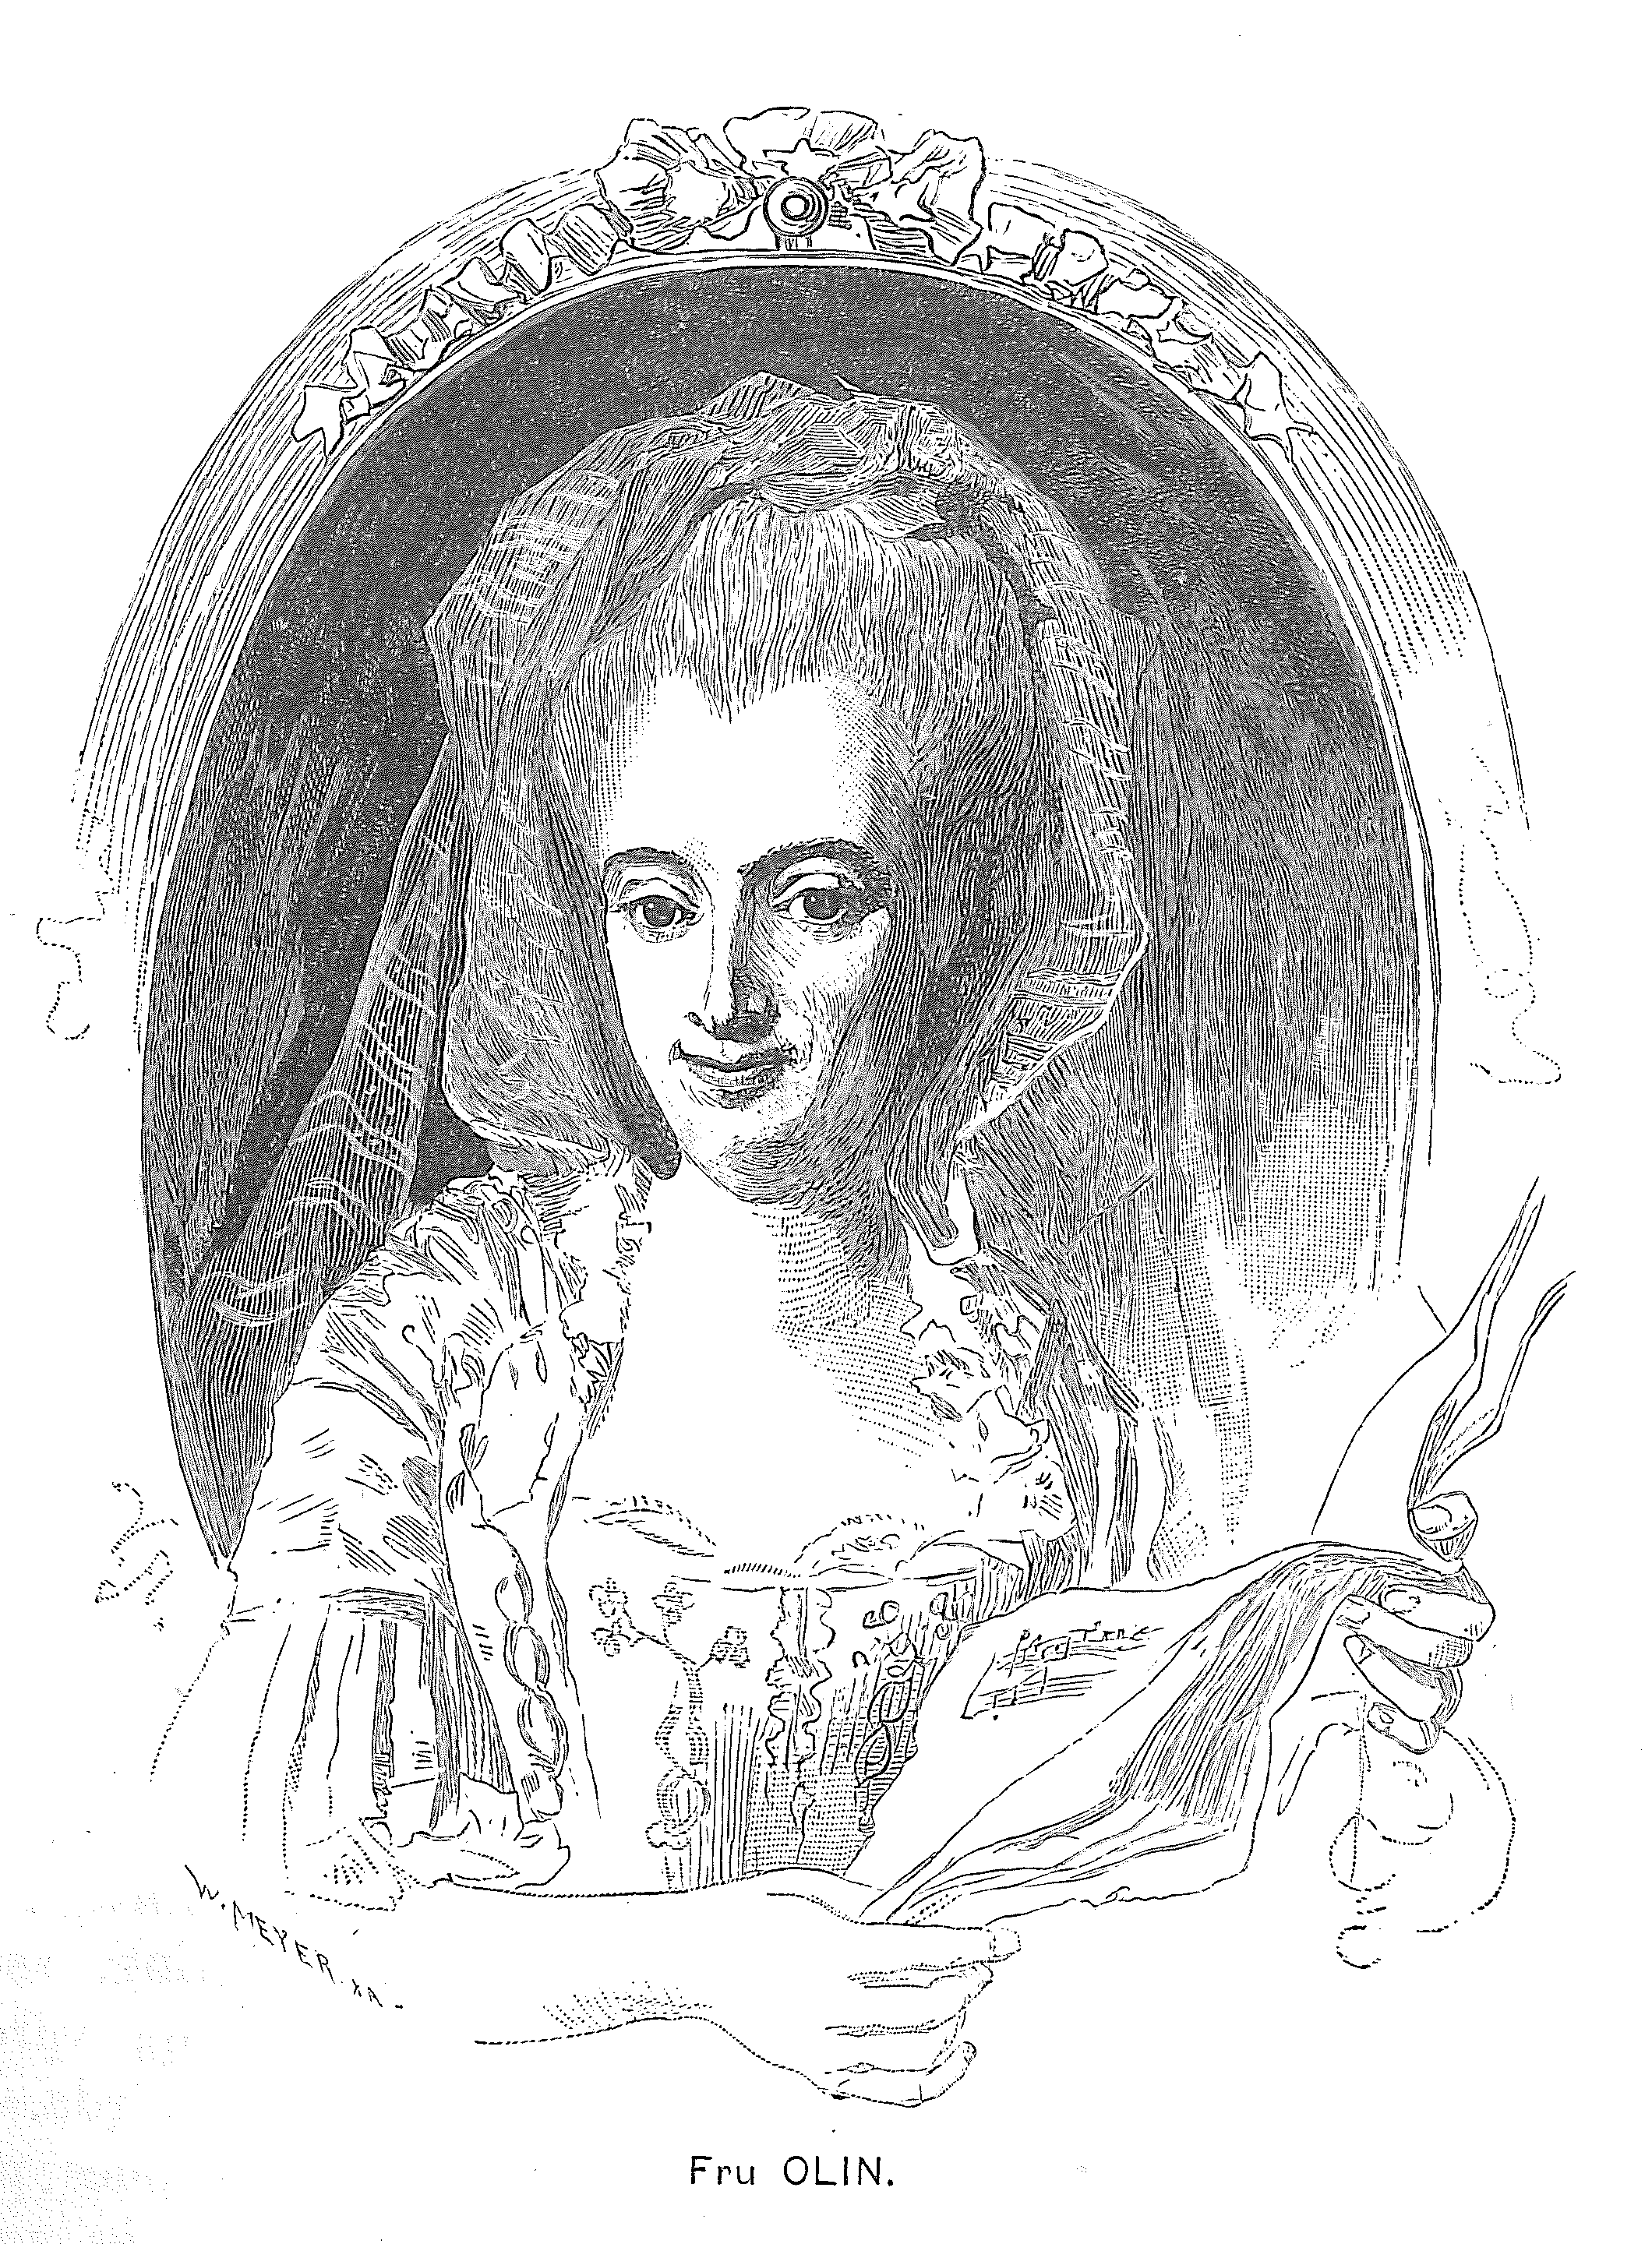 Elisabeth Olin. Engraving by Wilhelm Meyer after drawing by Vicke Andrén in Hedberg, Frans, Sevnska operasångare, Stockholm, 1885. Image source: Wikimedia Commons